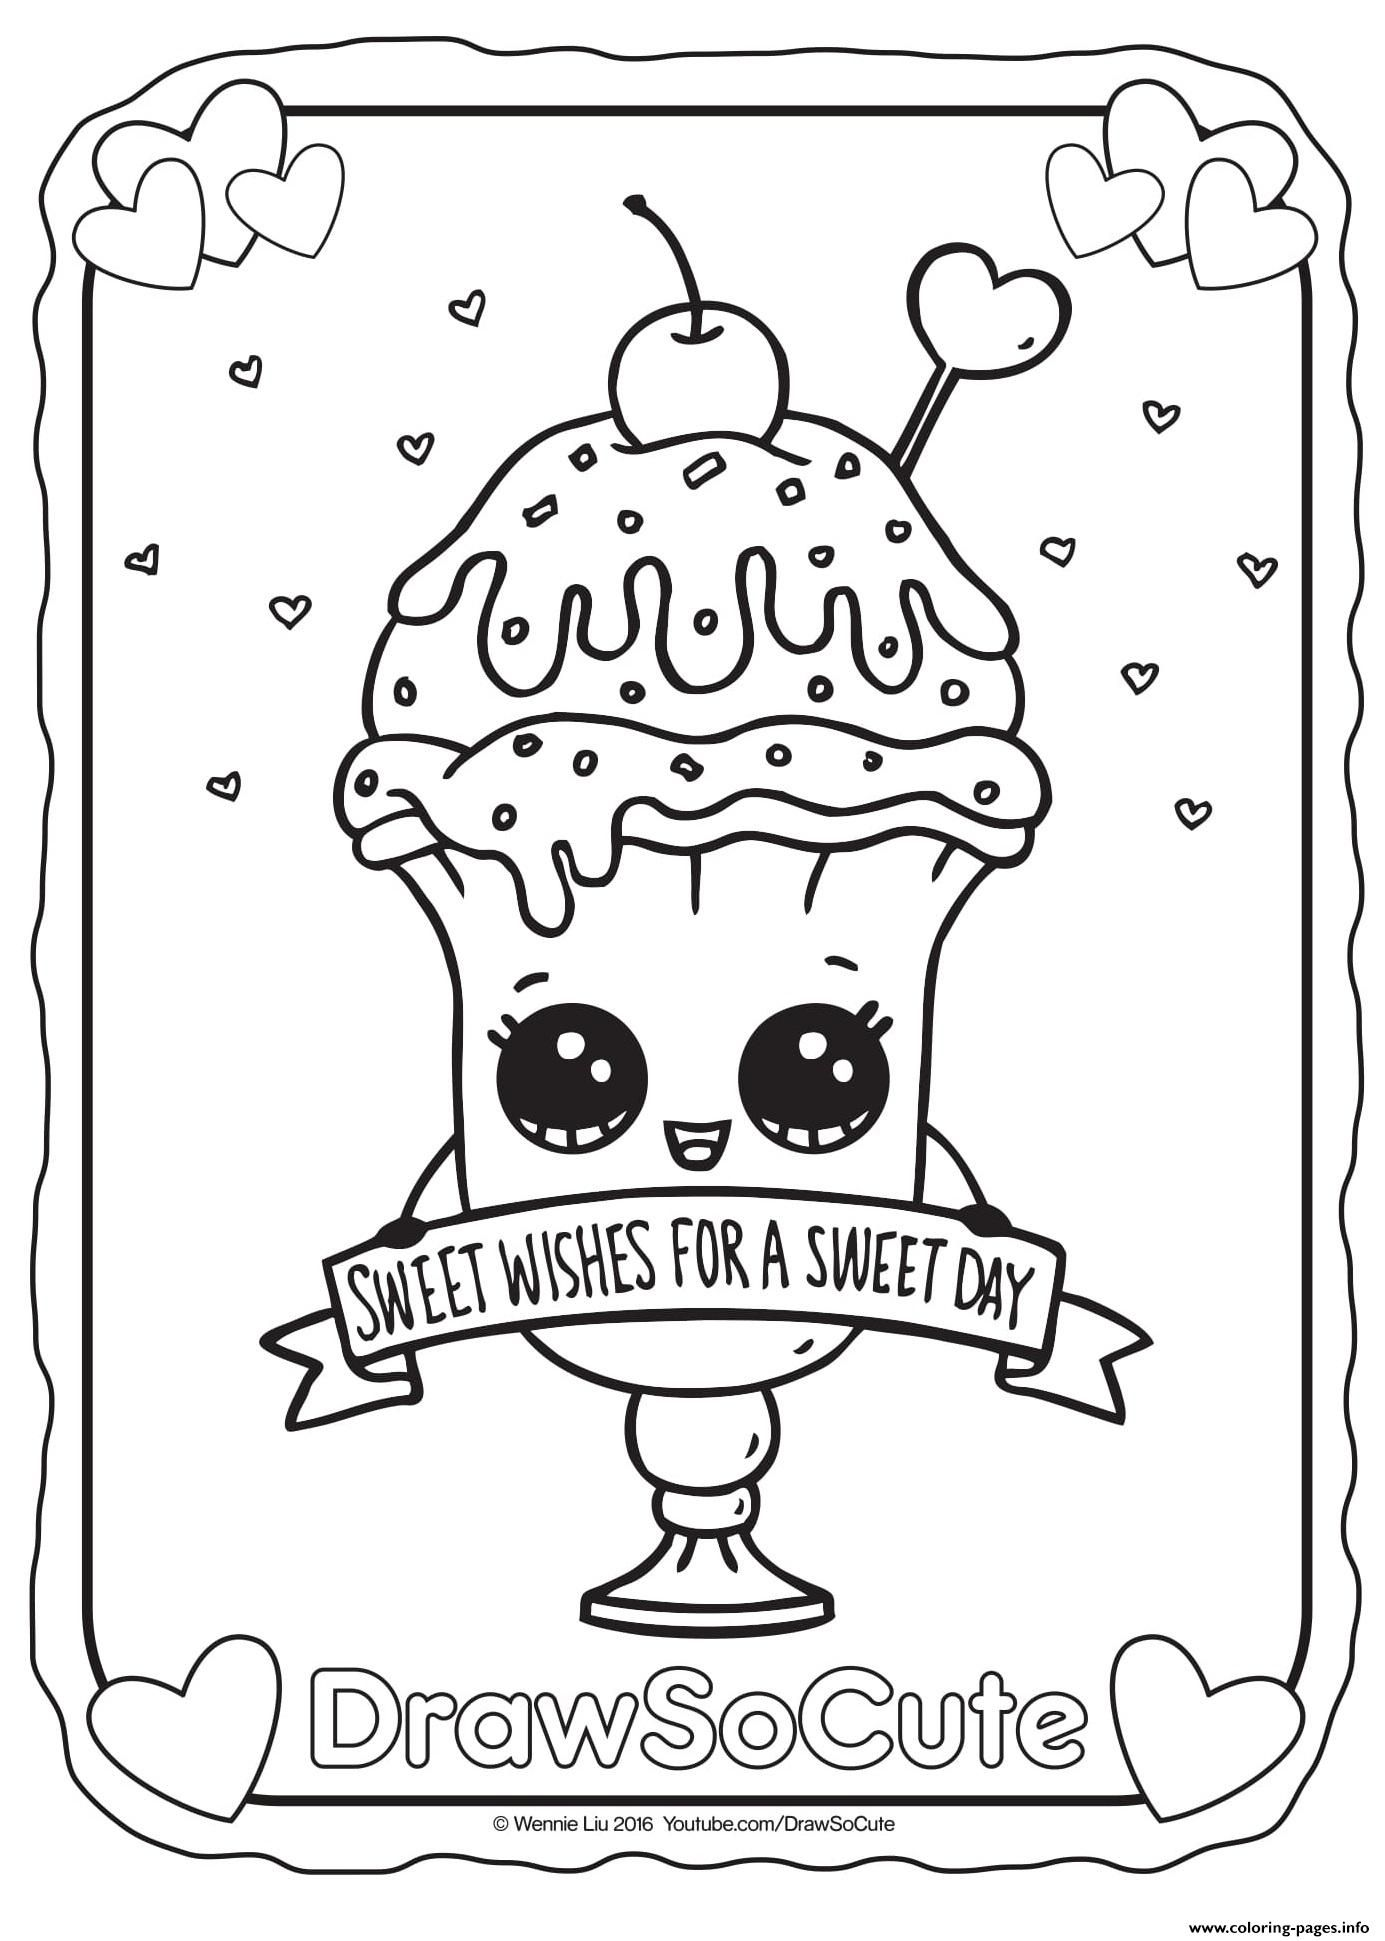 Draw so Cute Coloring Pages 4